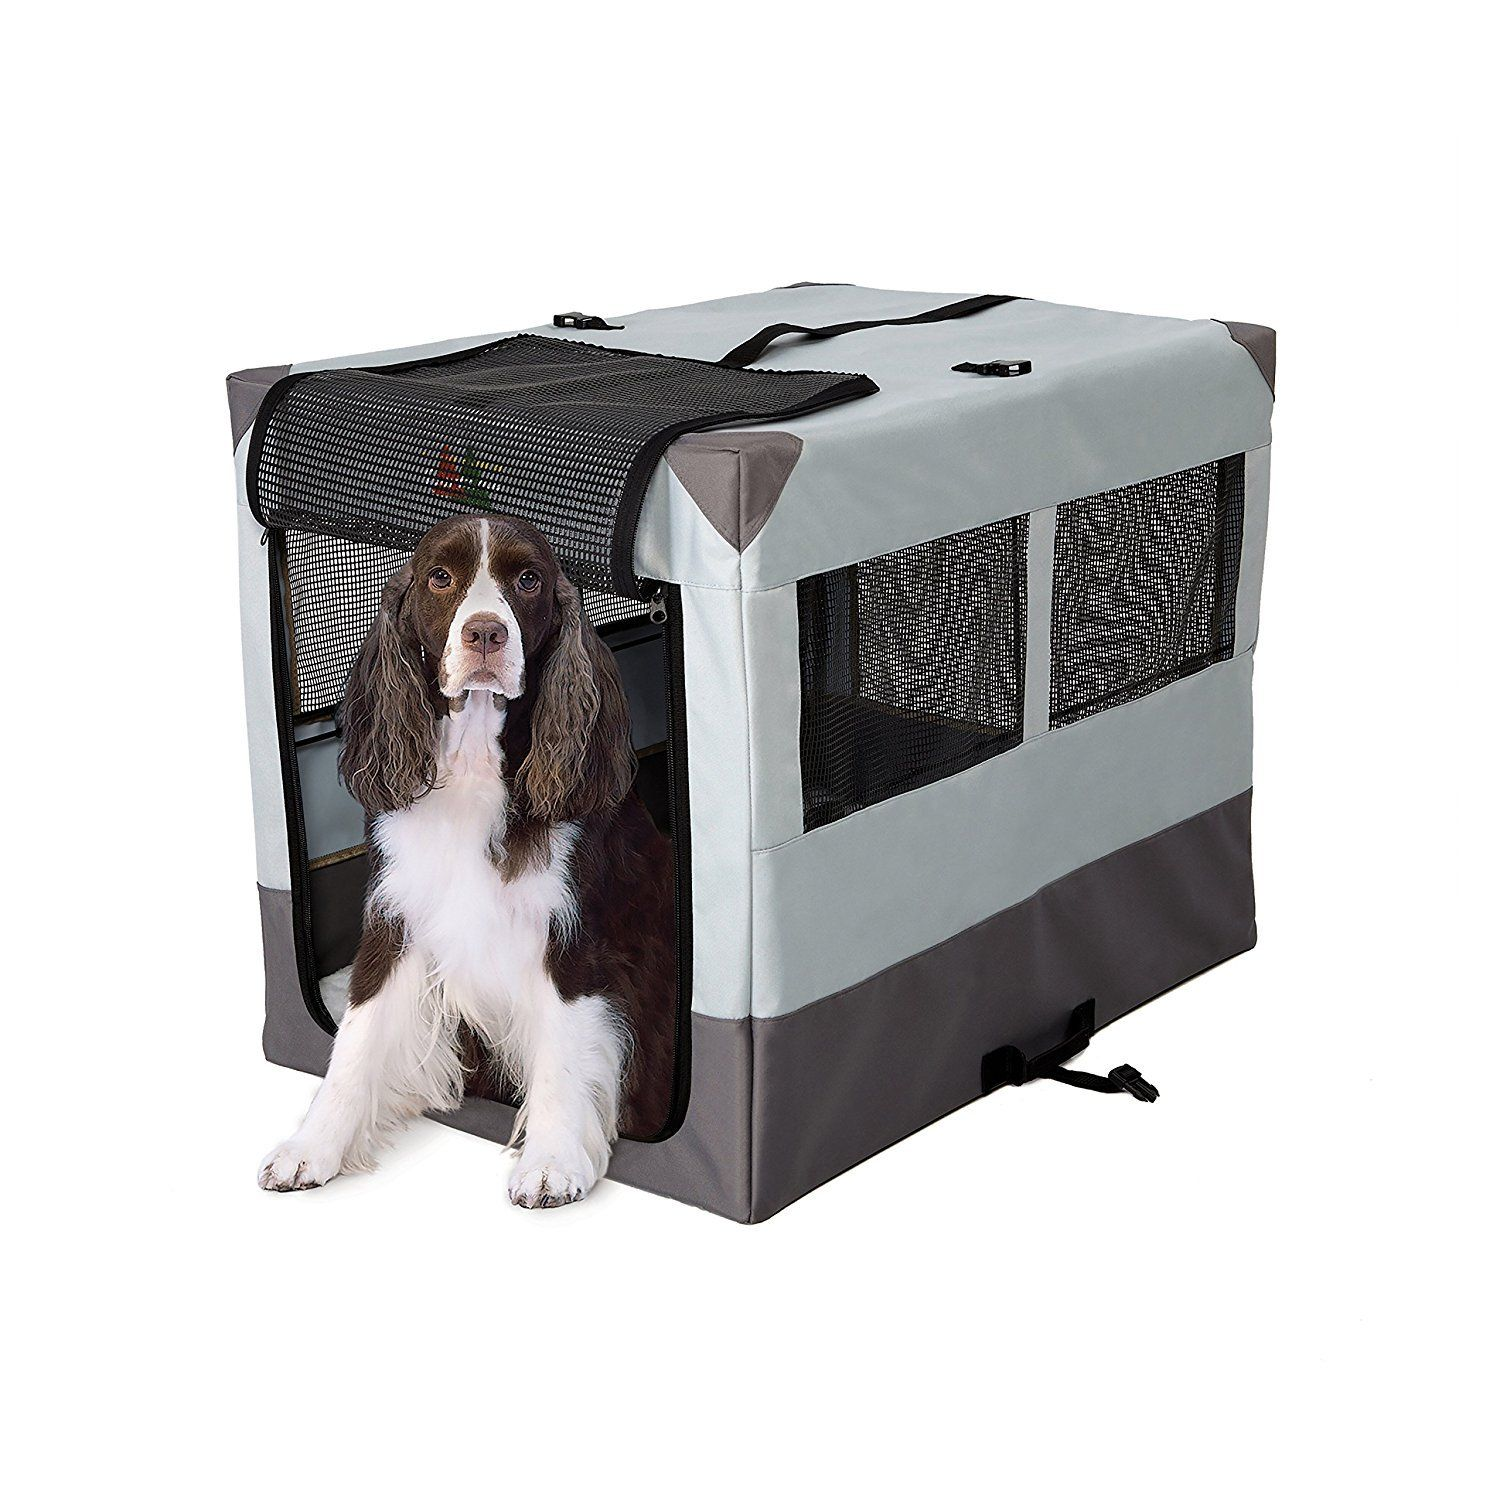 Midwest 1736sp Canine Camper Sportable Crate Portable Dog Kennels Portable Dog Crate Large Dog Crate